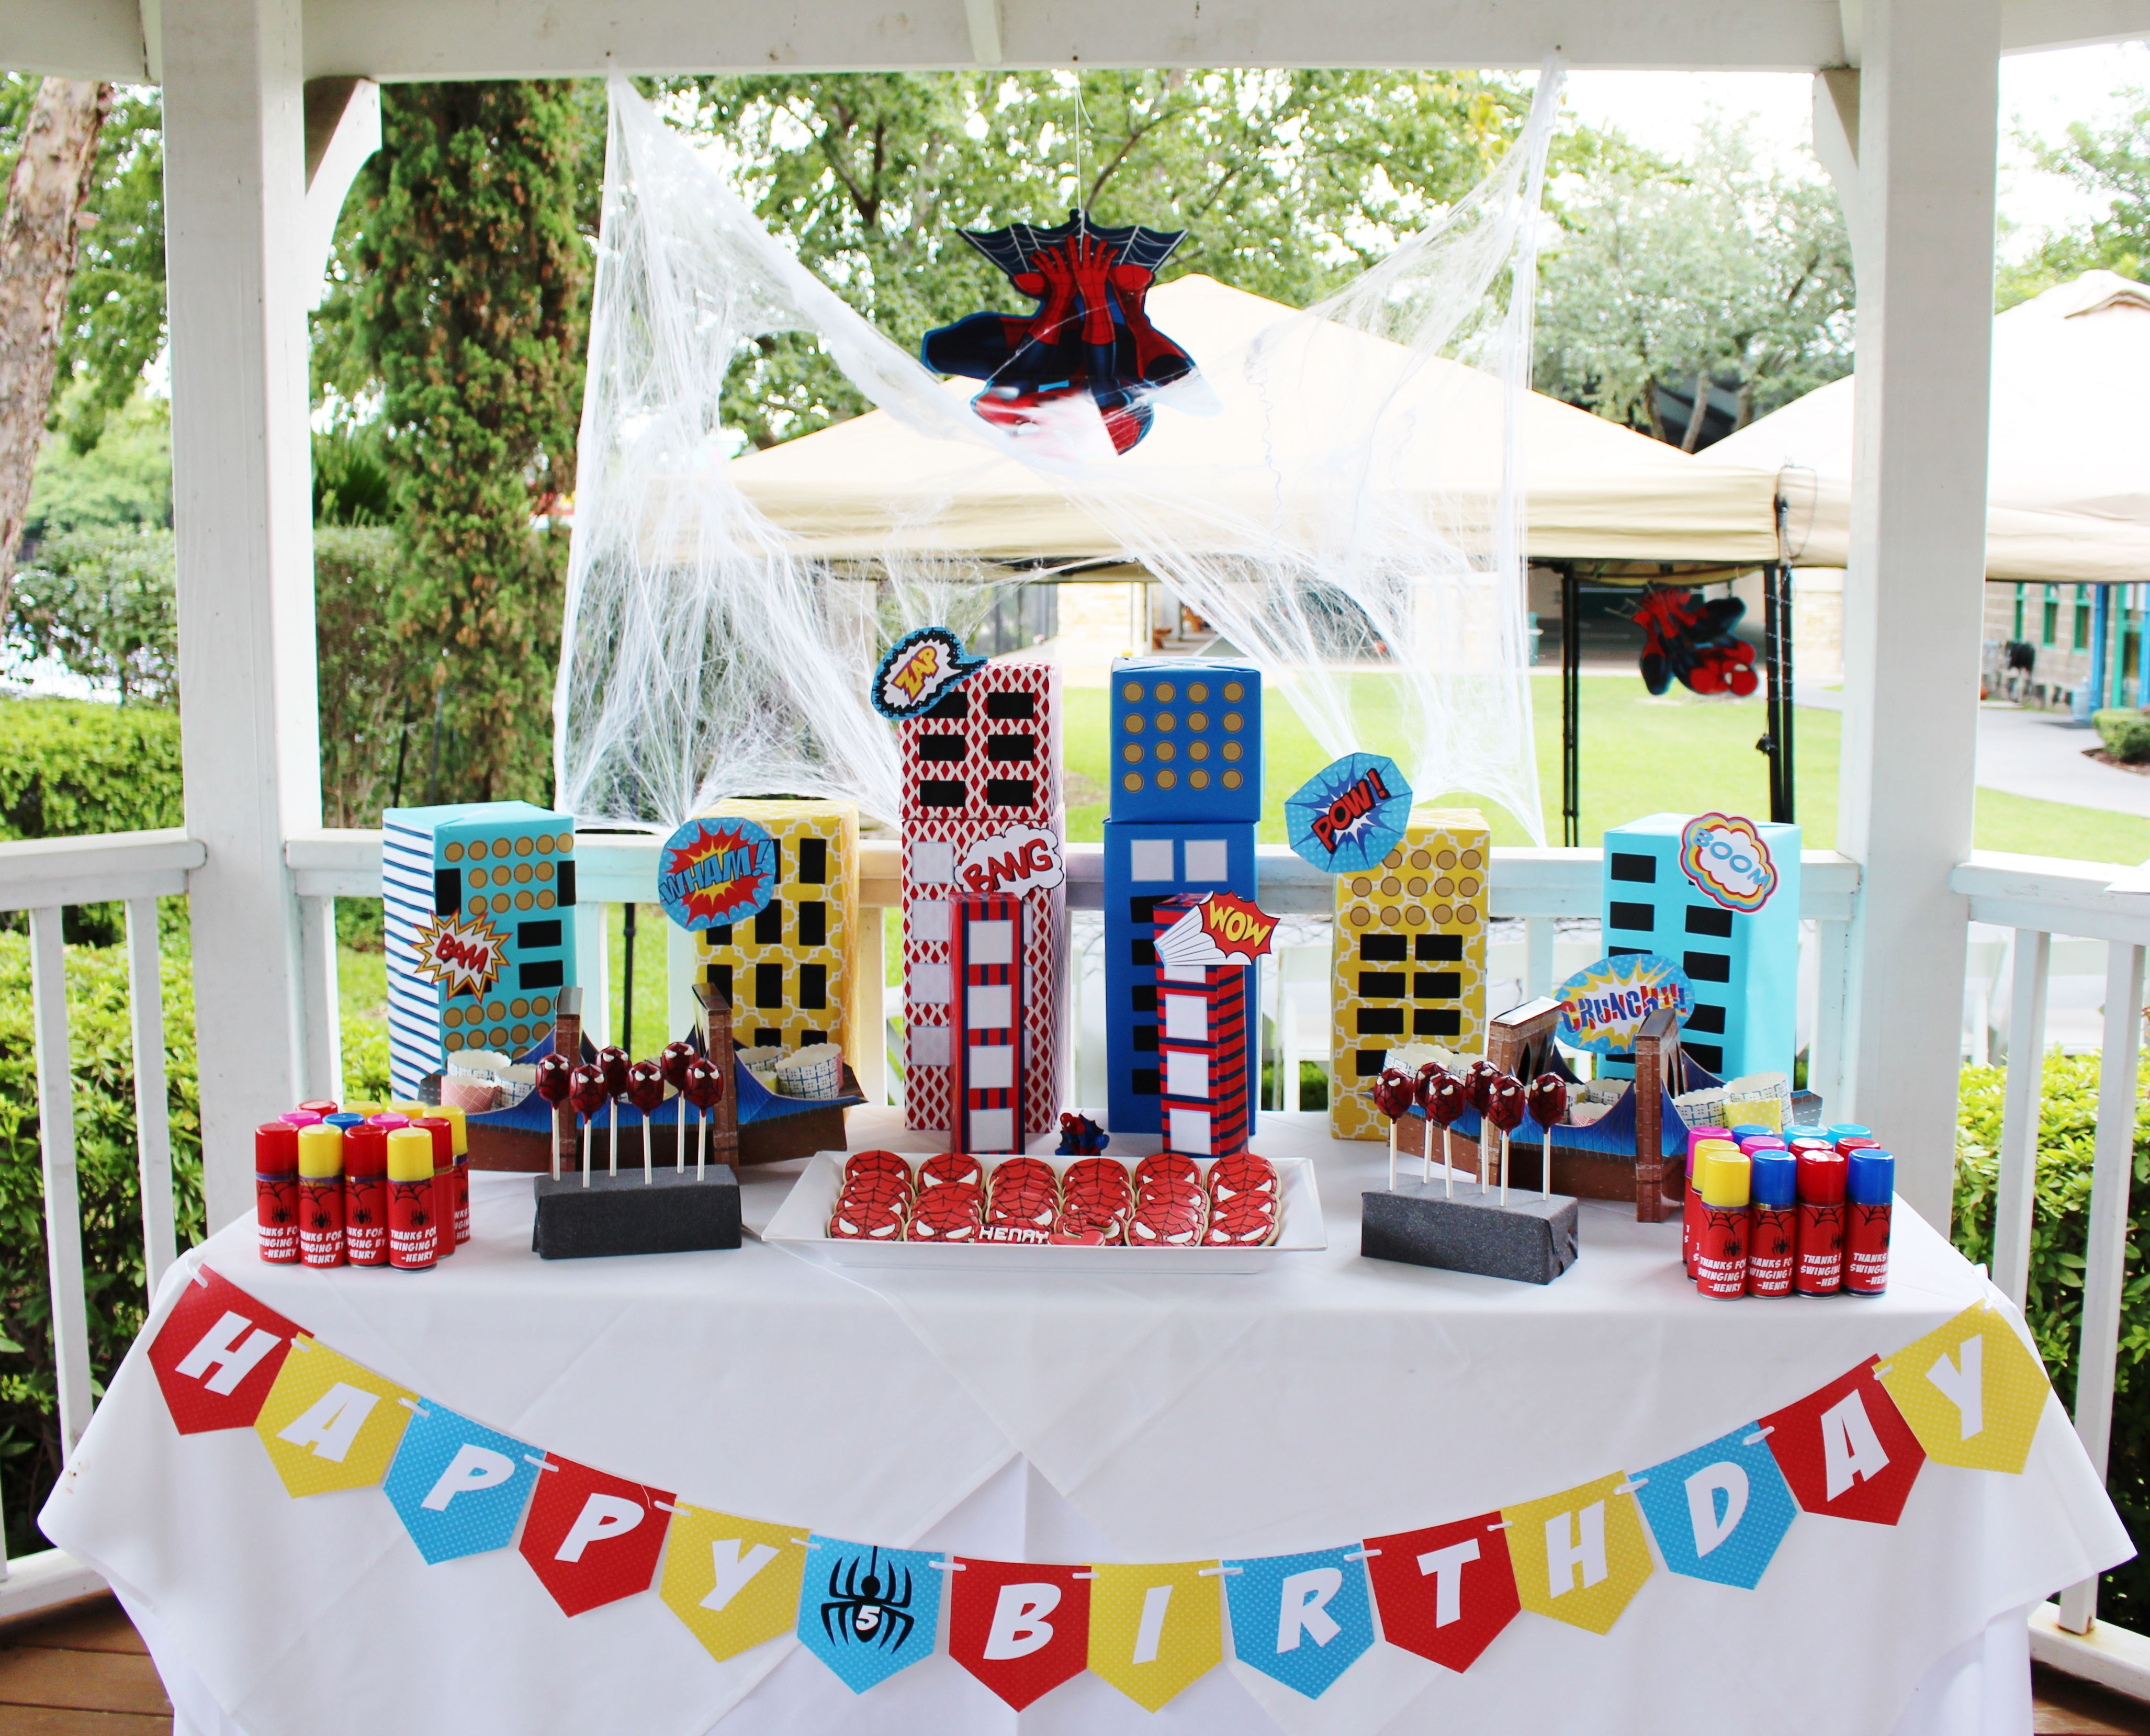 Spiderman birthday party ideas; spiderman party decorations & Spiderman birthday party ideas; spiderman party decorations ...